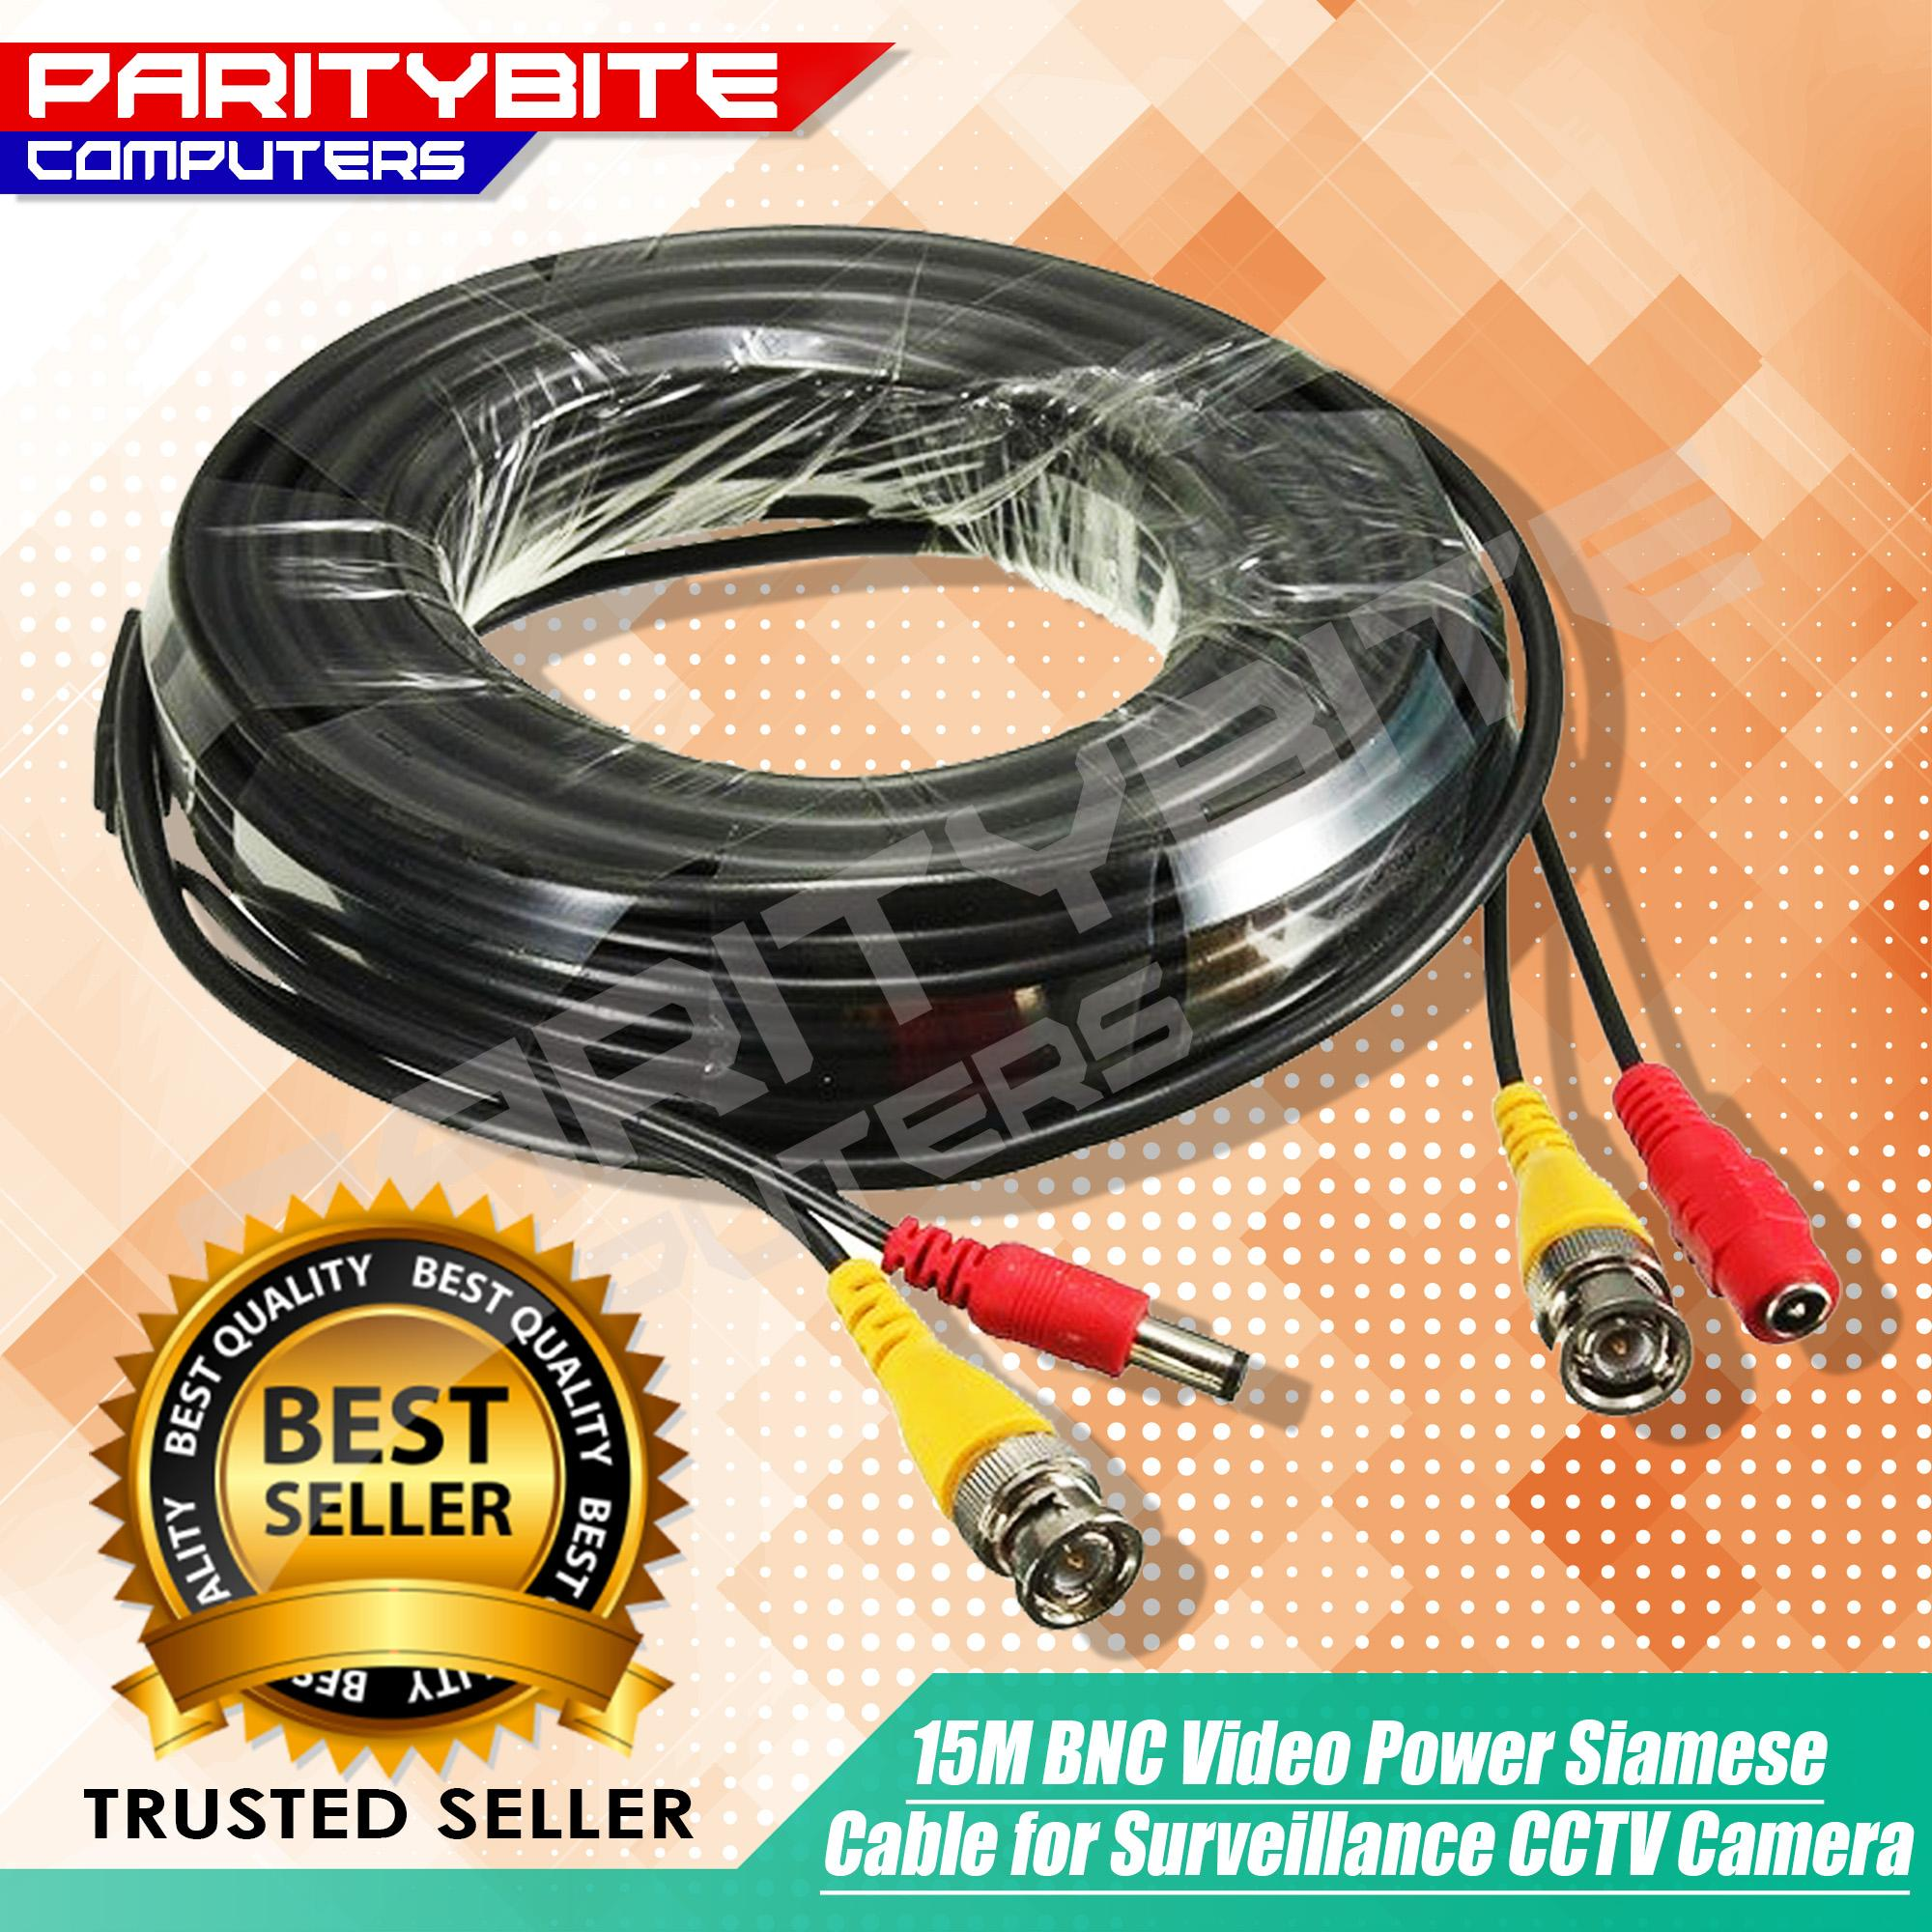 hight resolution of 15m bnc video power siamese cable for surveillance cctv camera